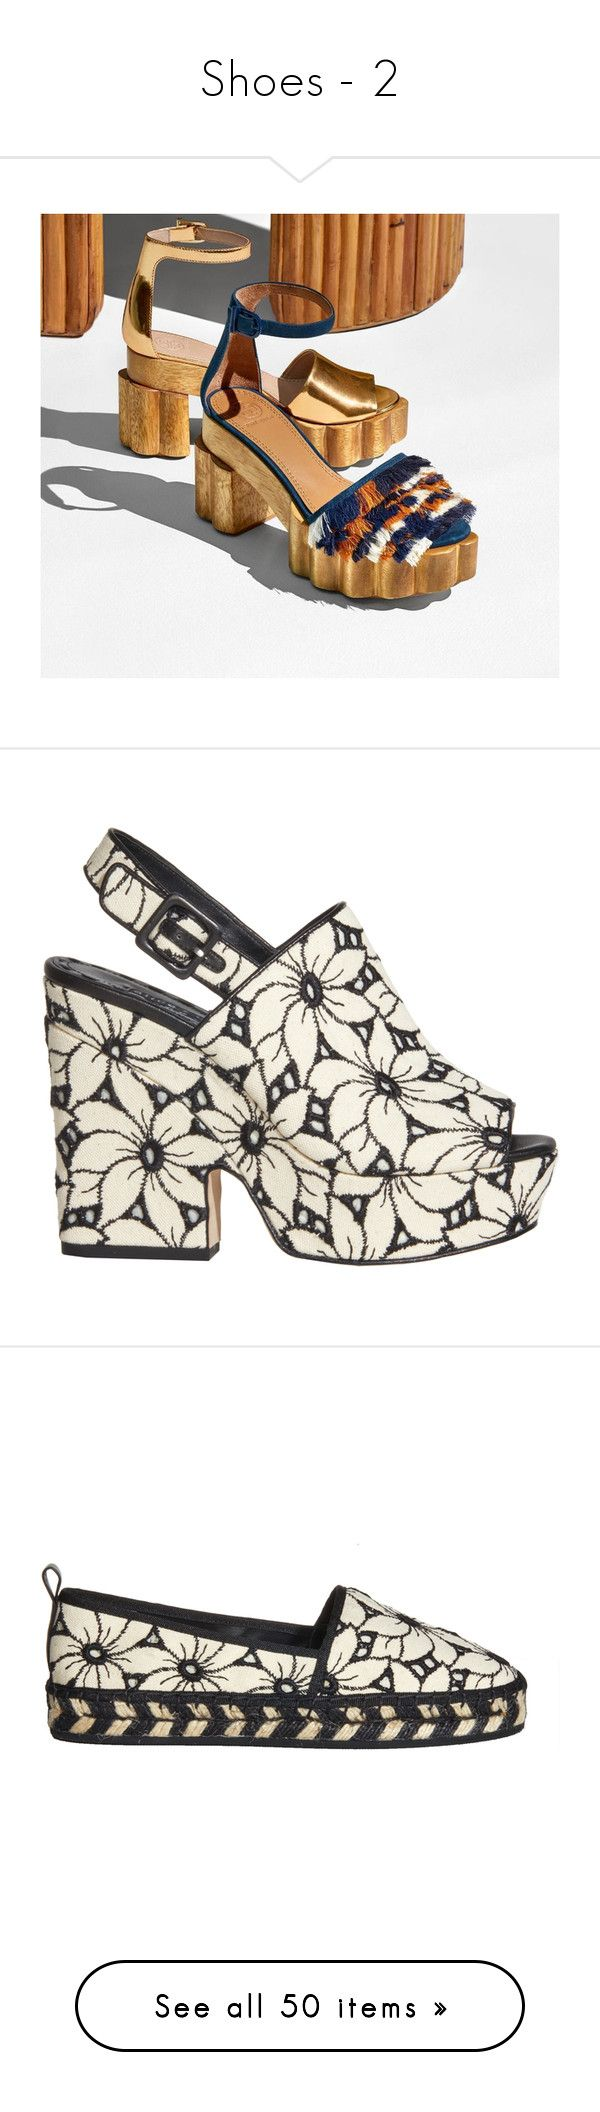 """""""Shoes - 2"""" by cilita-d ❤ liked on Polyvore featuring shoes, pumps, peep toe pumps, sling back pumps, peep toe shoes, peep toe slingback pumps, black and white shoes, flats, flat shoes and leather espadrille flats"""